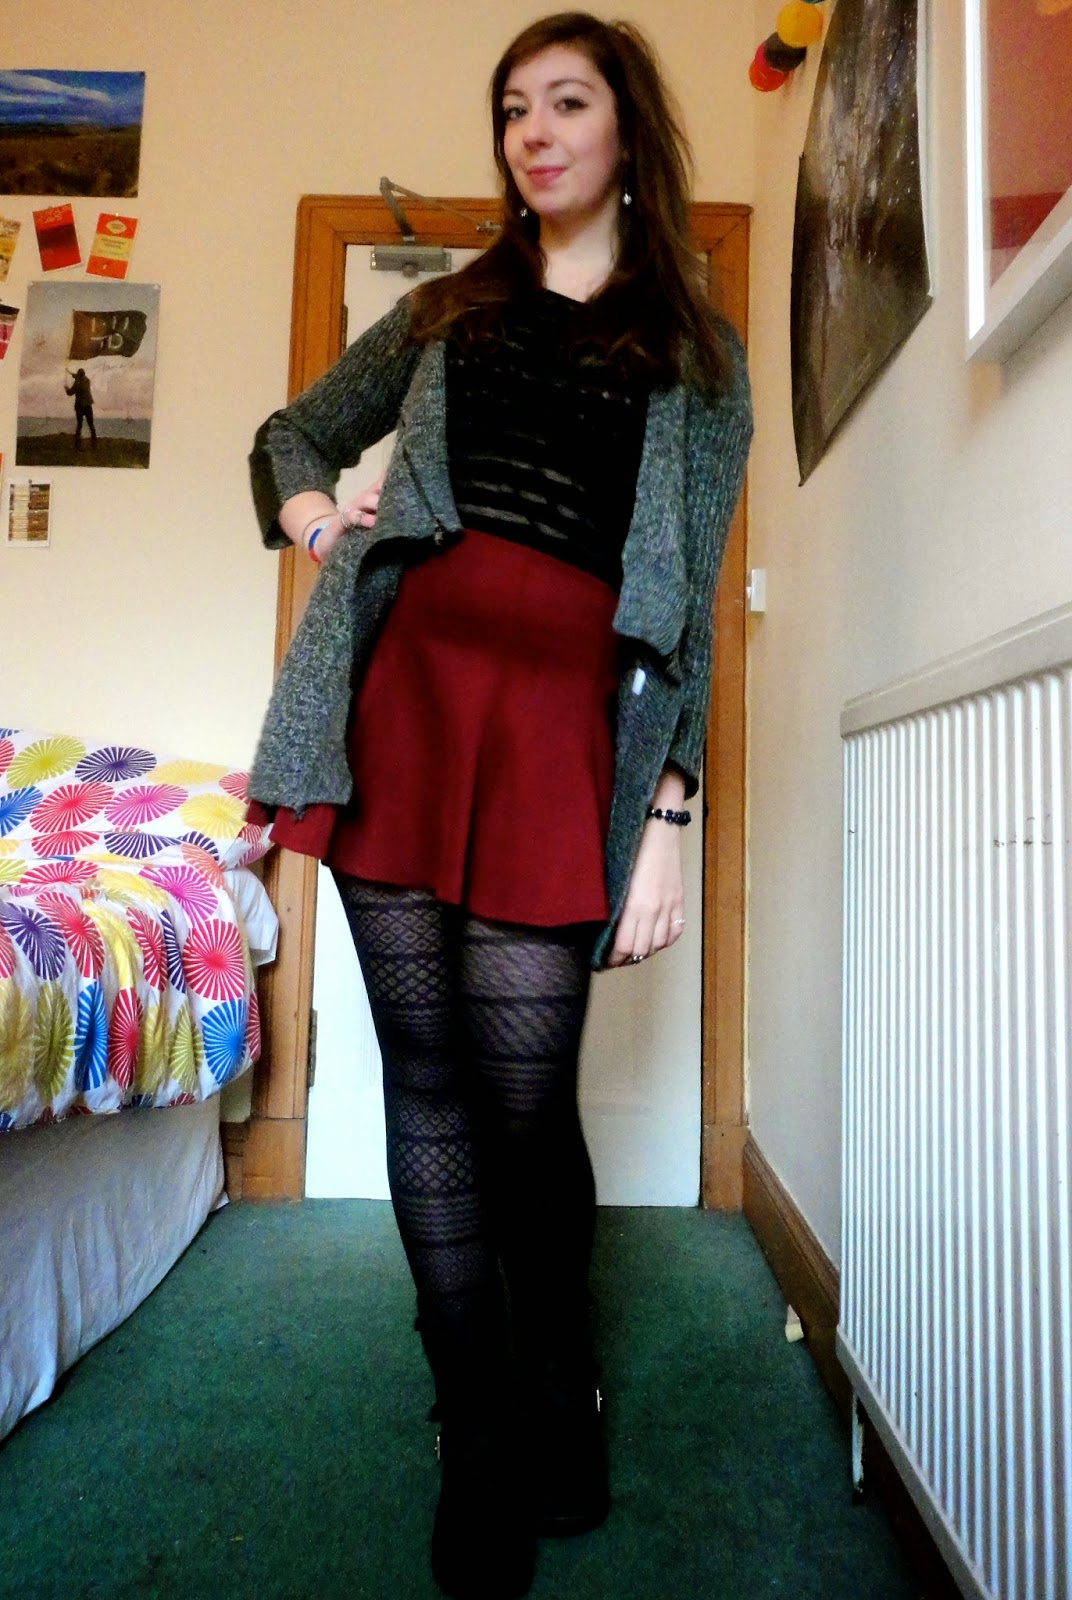 Outfit of grey wool cardgian, black striped top, red skirt, patterned tights and black boots